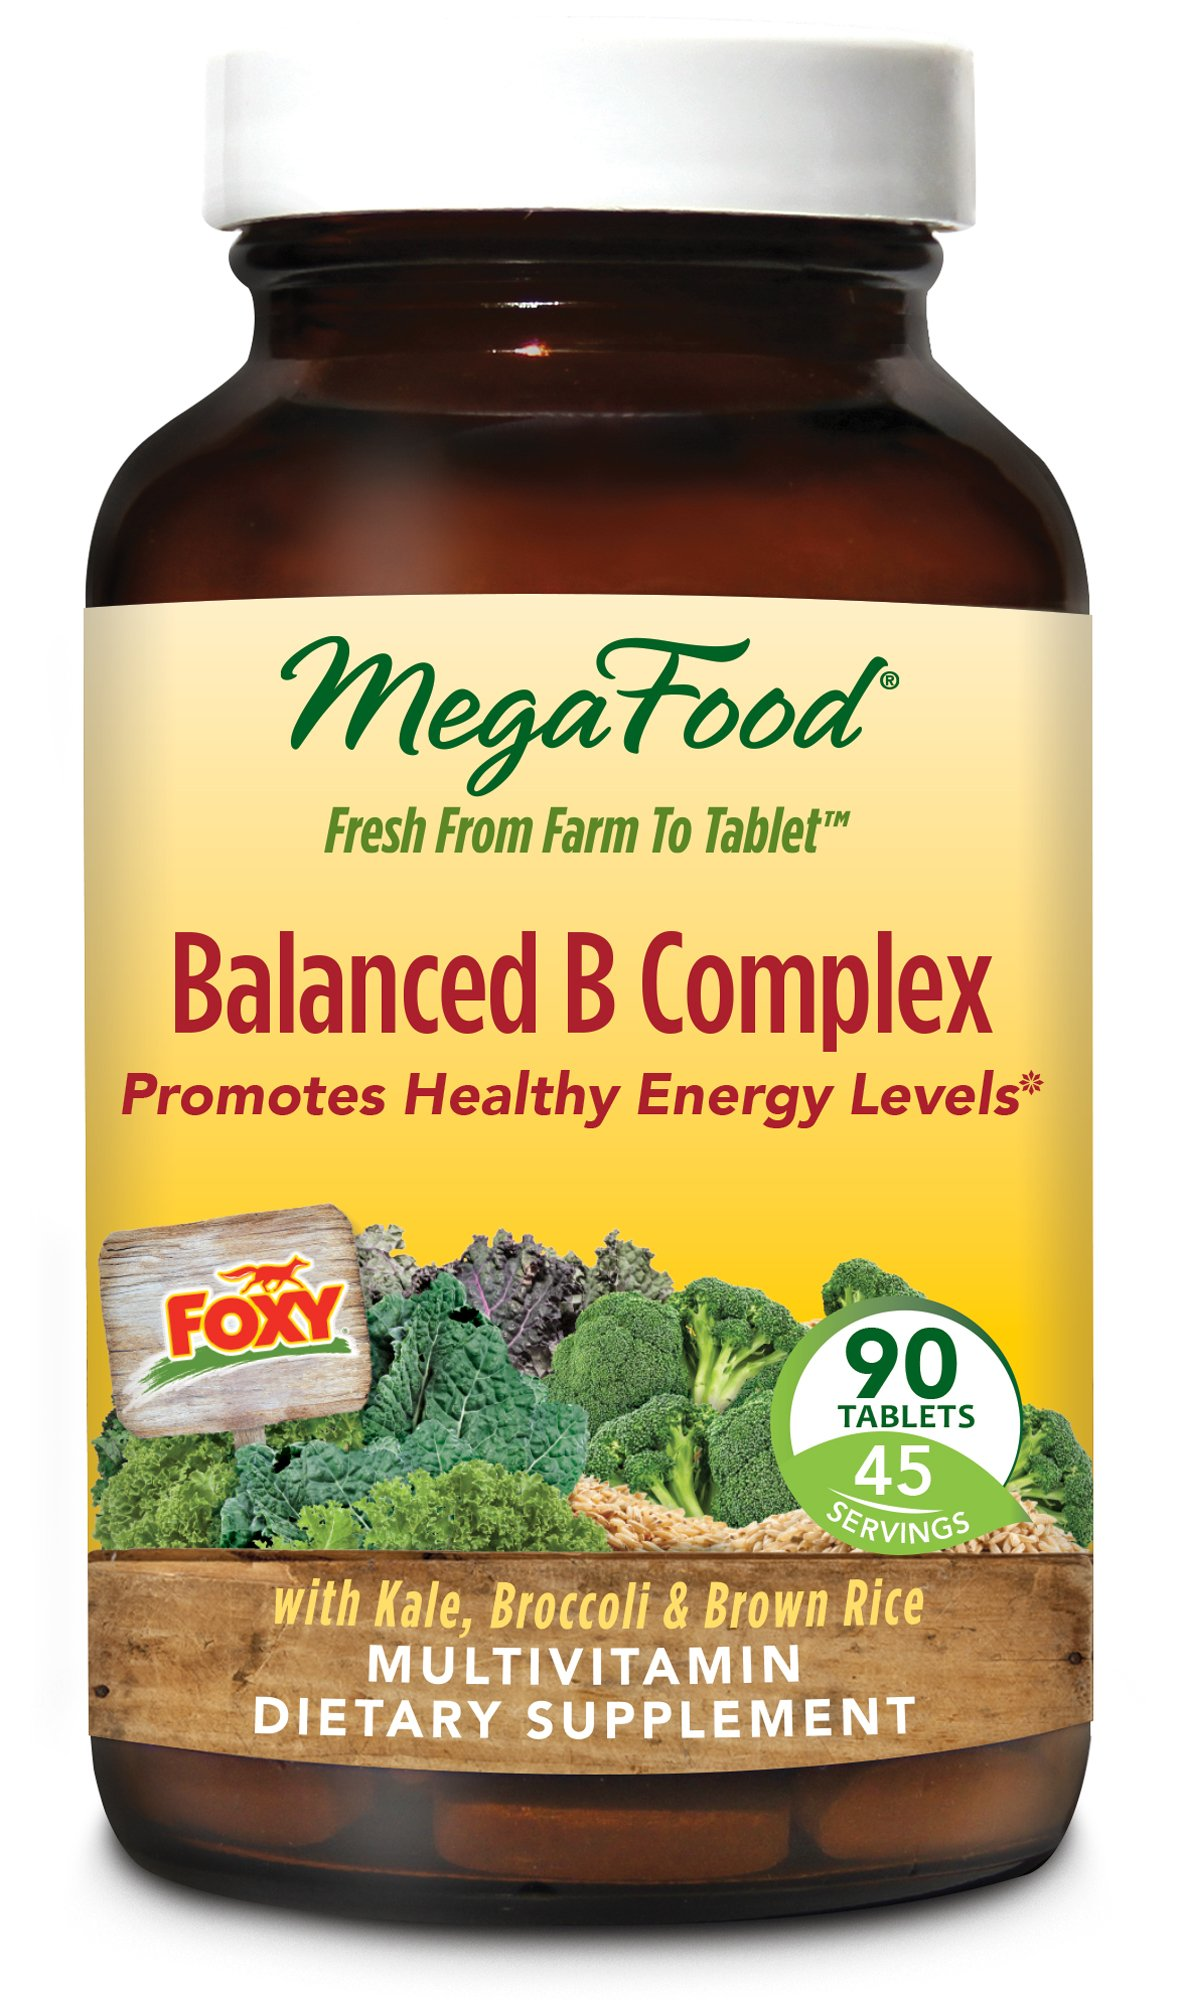 MegaFood - Balanced B Complex, Promotes Energy Production, Alertness, Cognition, Focus, and a Healthy Nervous System with B Vitamins, Folate, and Biotin, Vegan, Gluten-Free, Non-GMO, 90 Tablets (FFP)